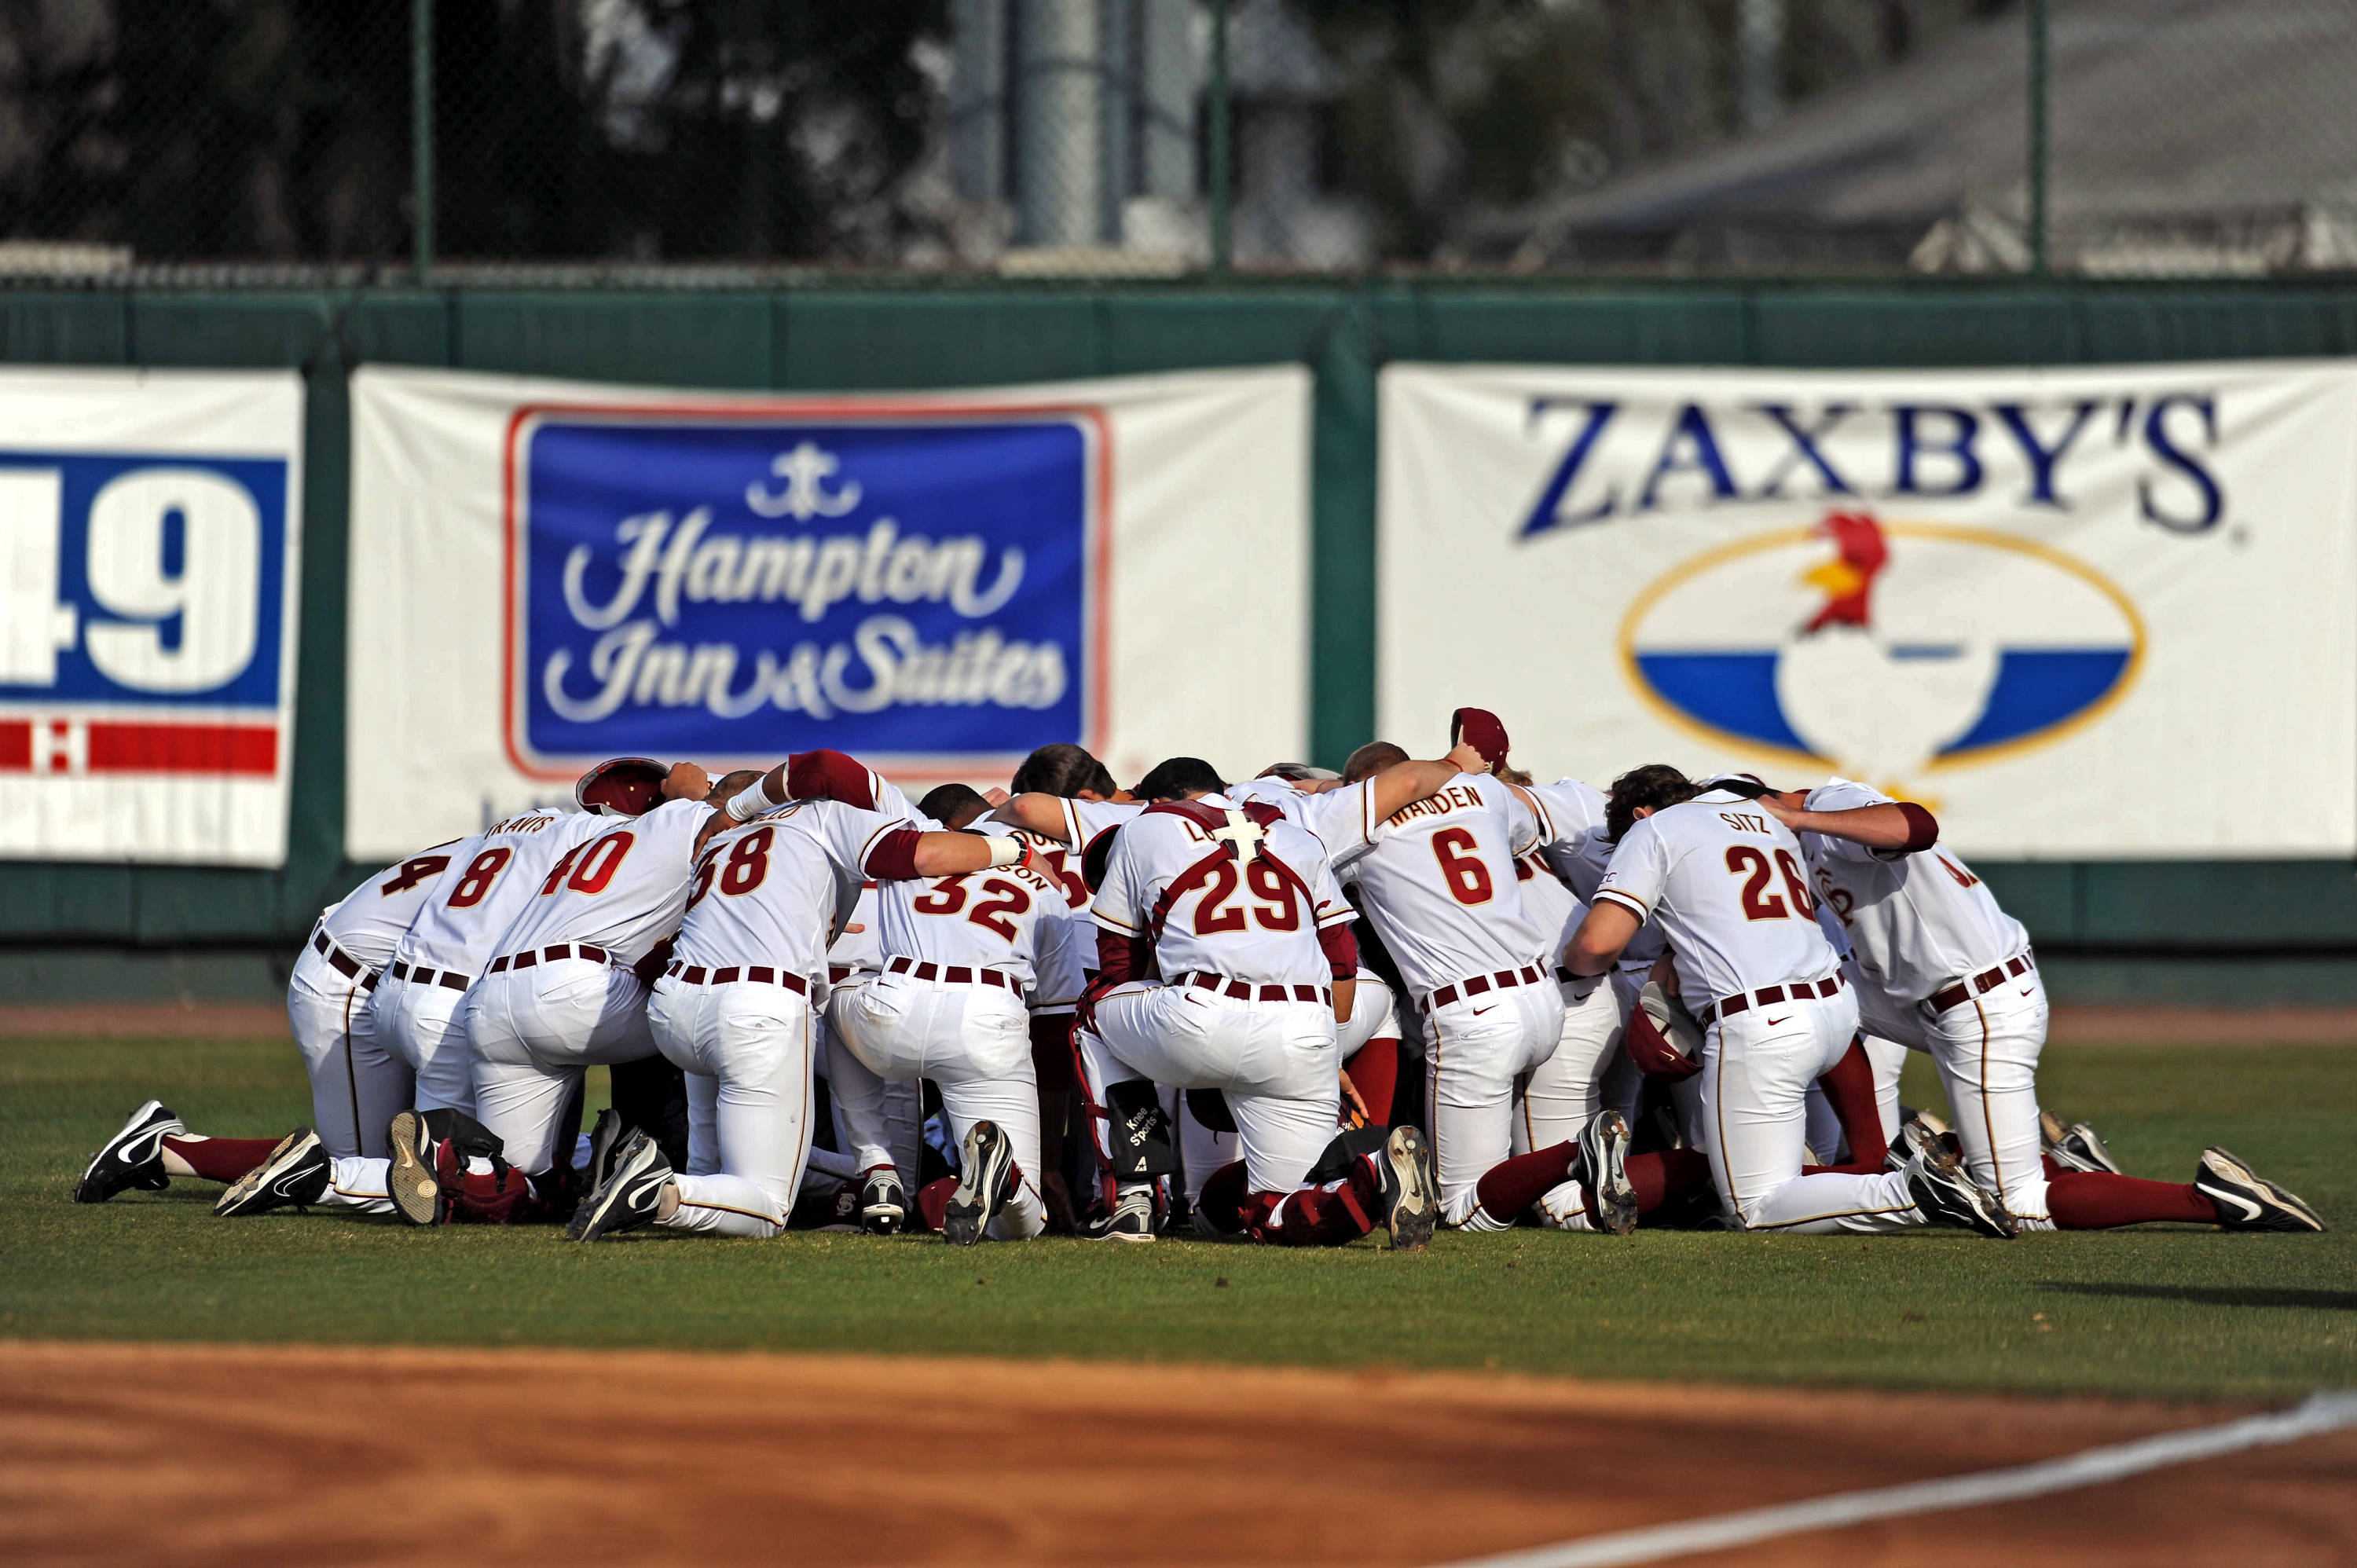 The Seminoles huddle before the start of Friday's opening day game against Georgia State.